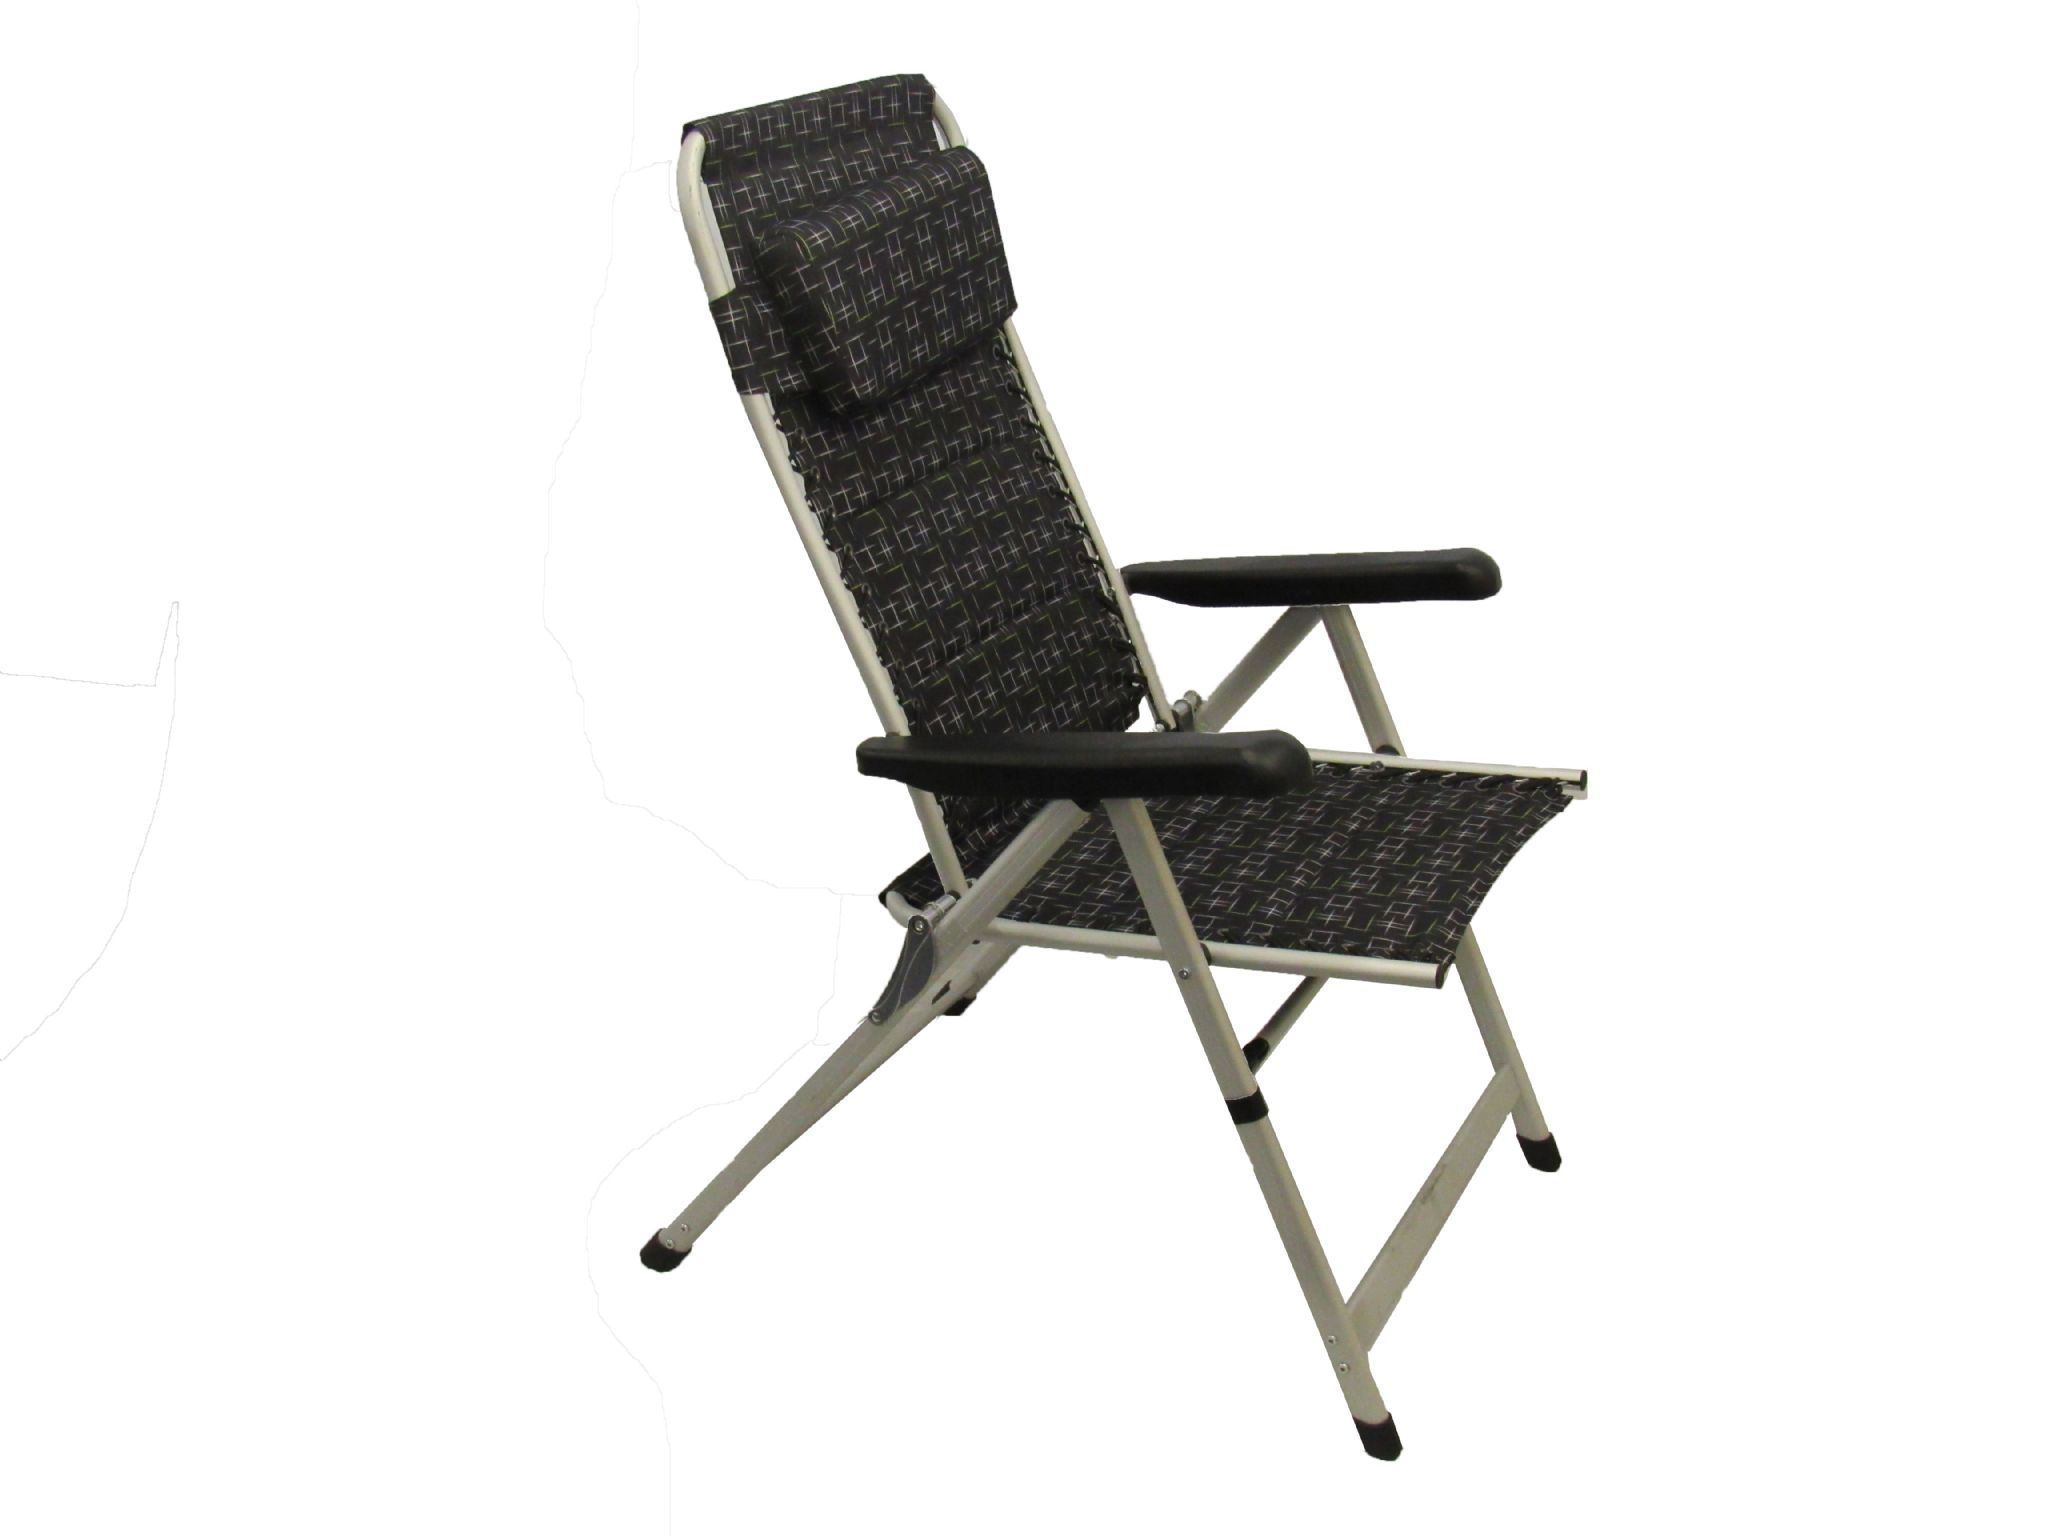 Comfortable Folding Chairs Garden Chair Padded Recliner Camping Summer Seat Coleman Camp Bike Most Outdoor Gear For Bedroom With Arms Expocafeperu Com